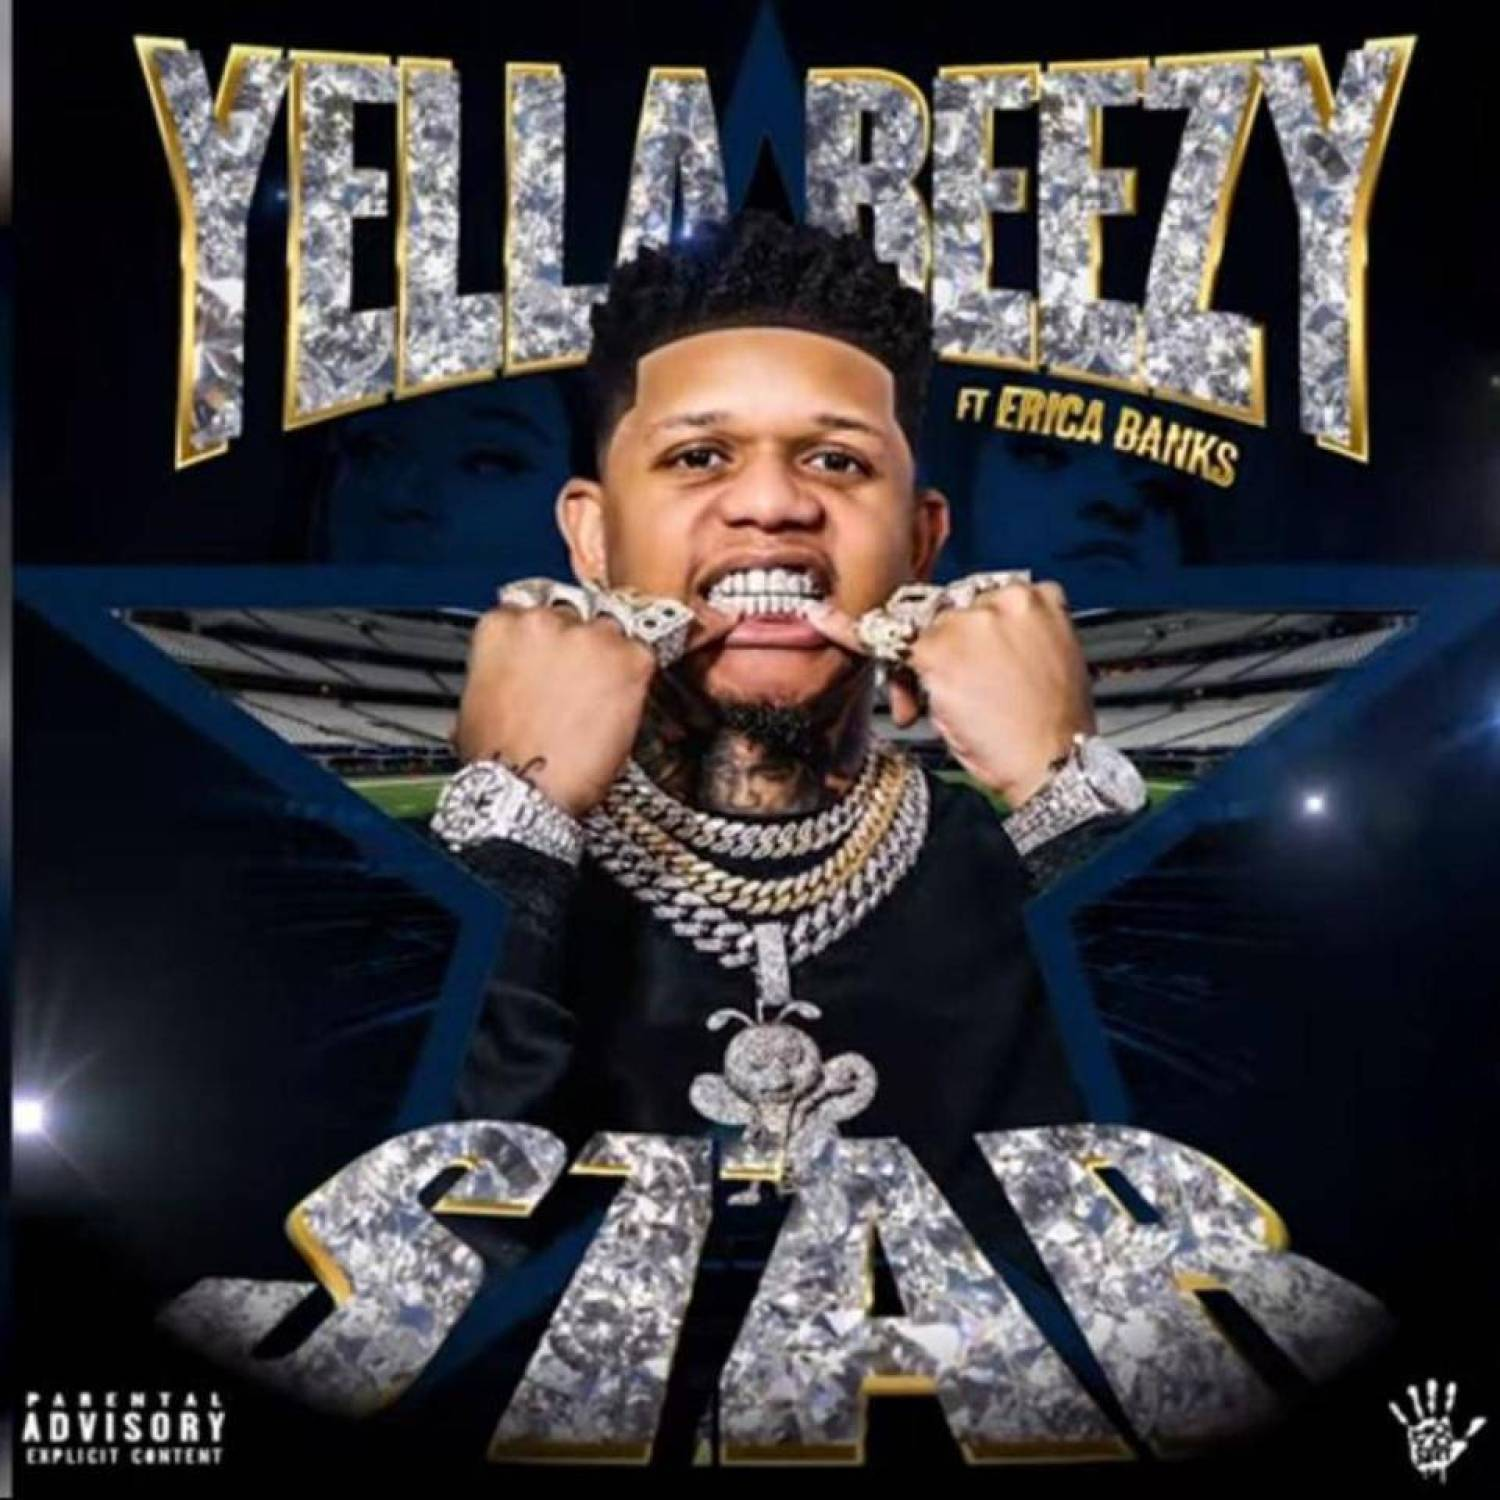 DOWNLOAD MP3: Yella Beezy – Star Ft. Erica Banks(Free MP3) AUDIO 320kbps